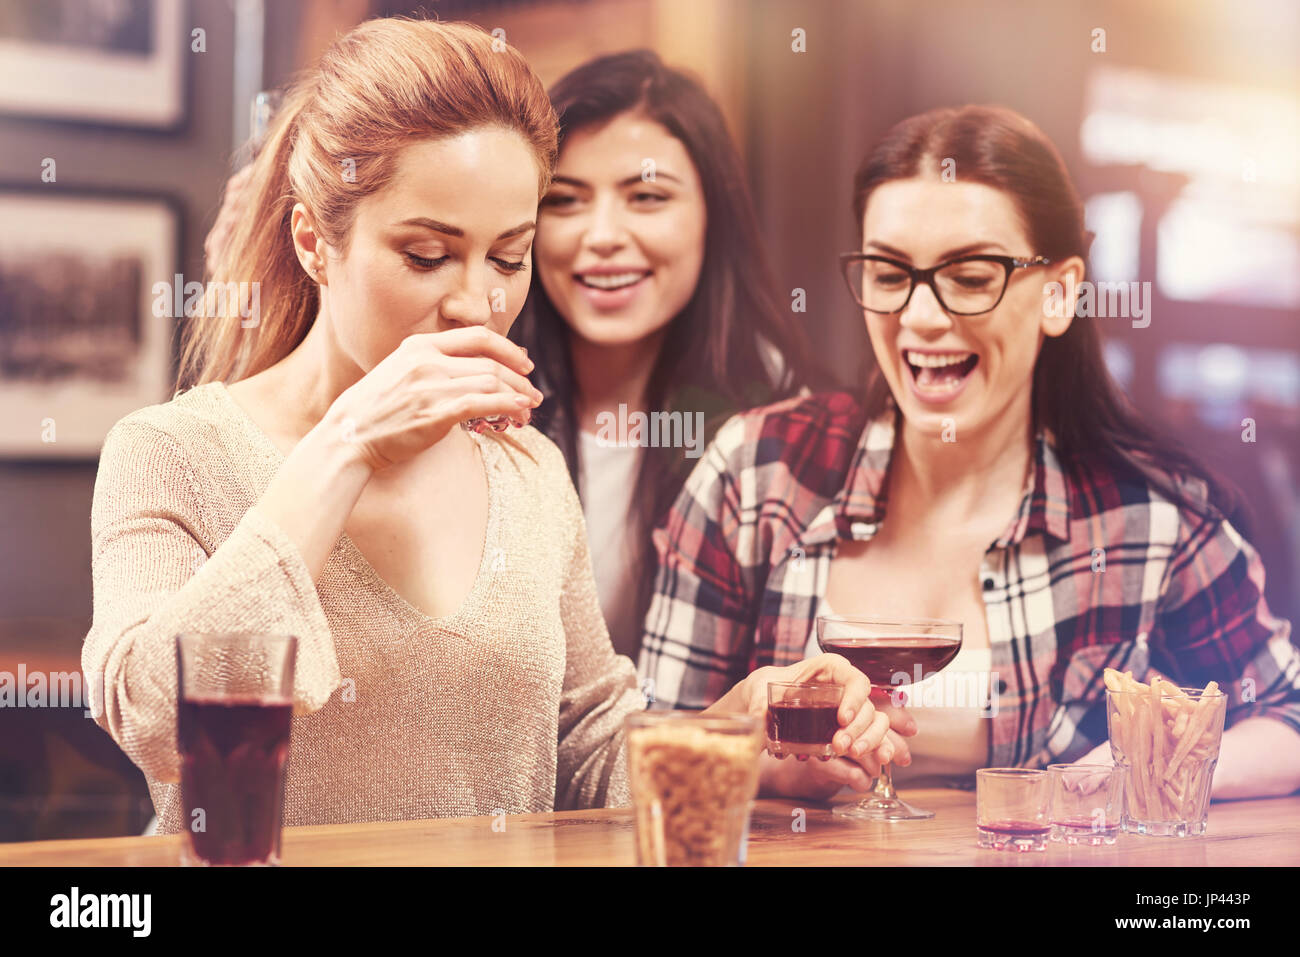 Two brunettes expressing positivity on faces - Stock Image